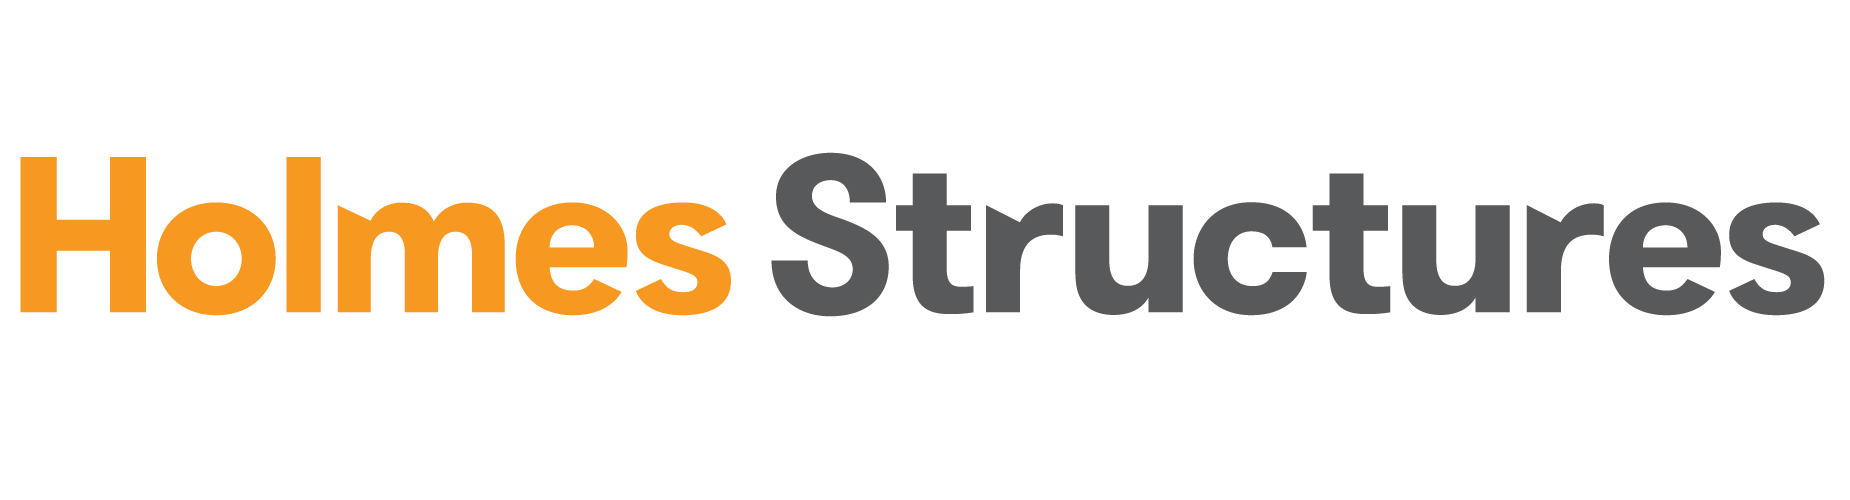 holmes-structures-logo.png